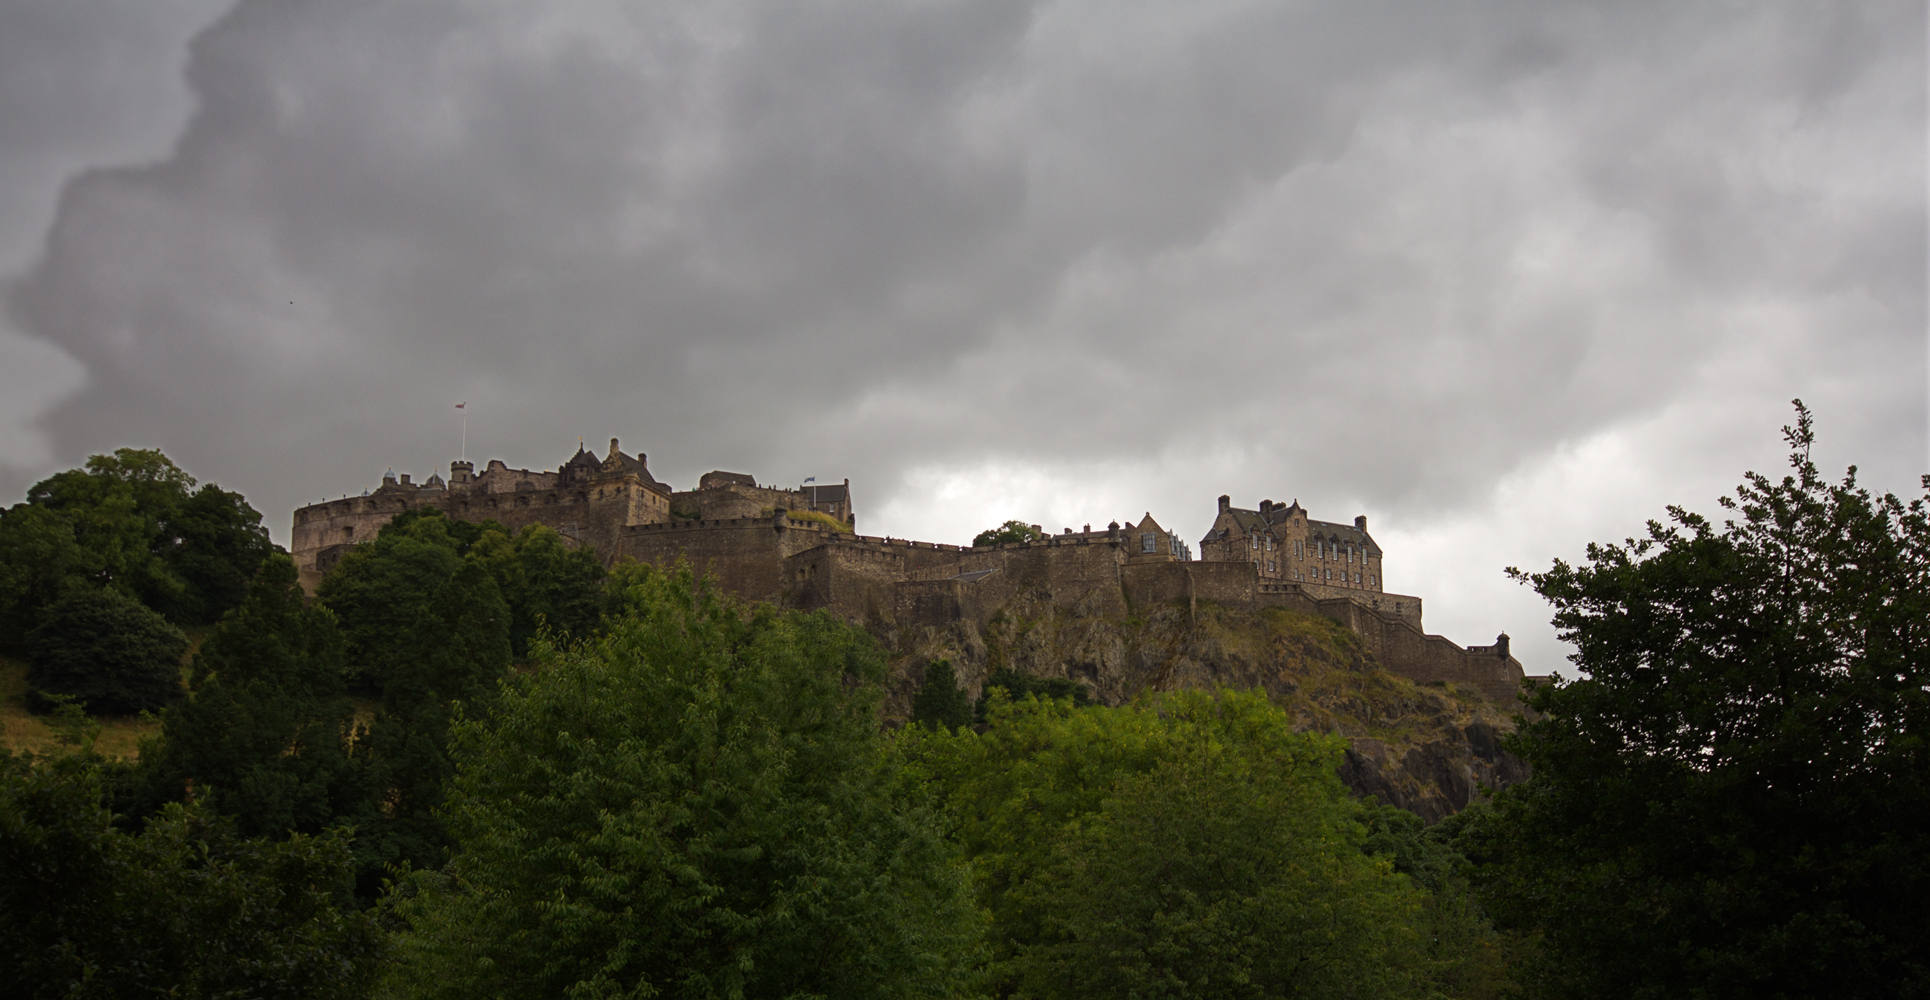 Edinburgh Castle, 2. Versuch